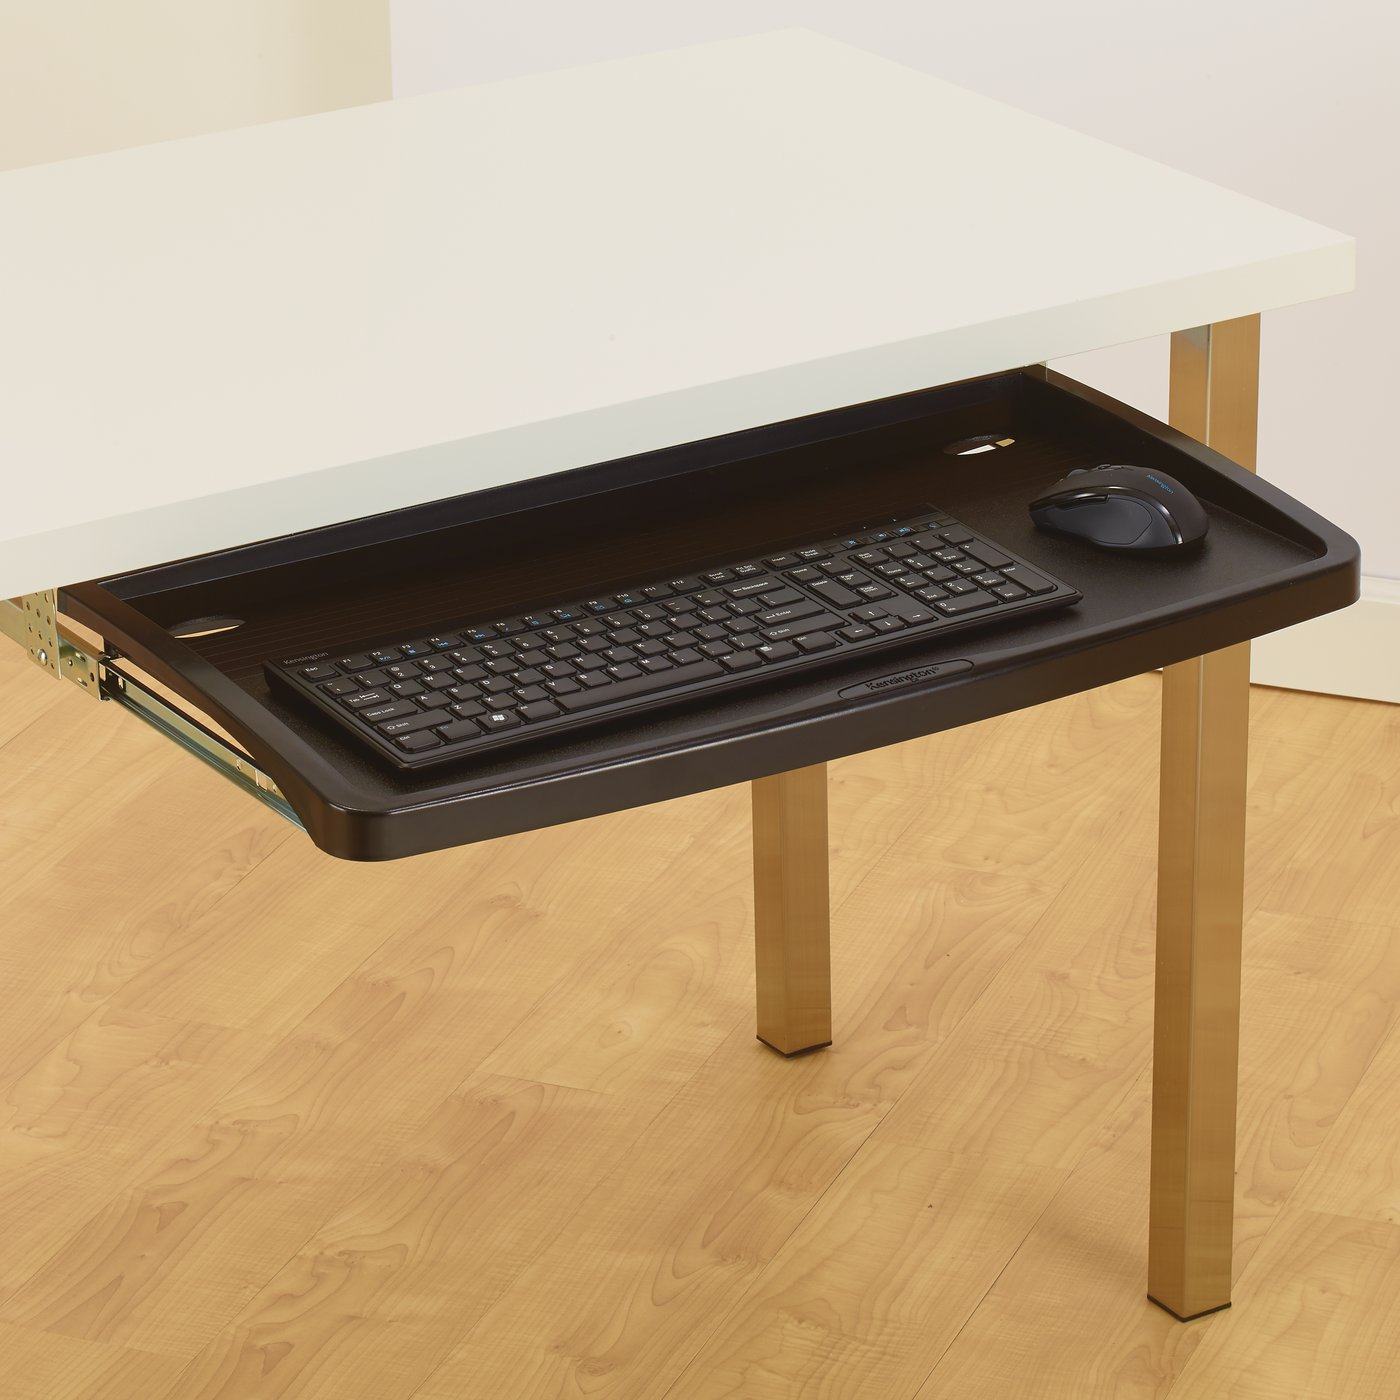 Kensington Products Ergonomics Keyboard Drawers